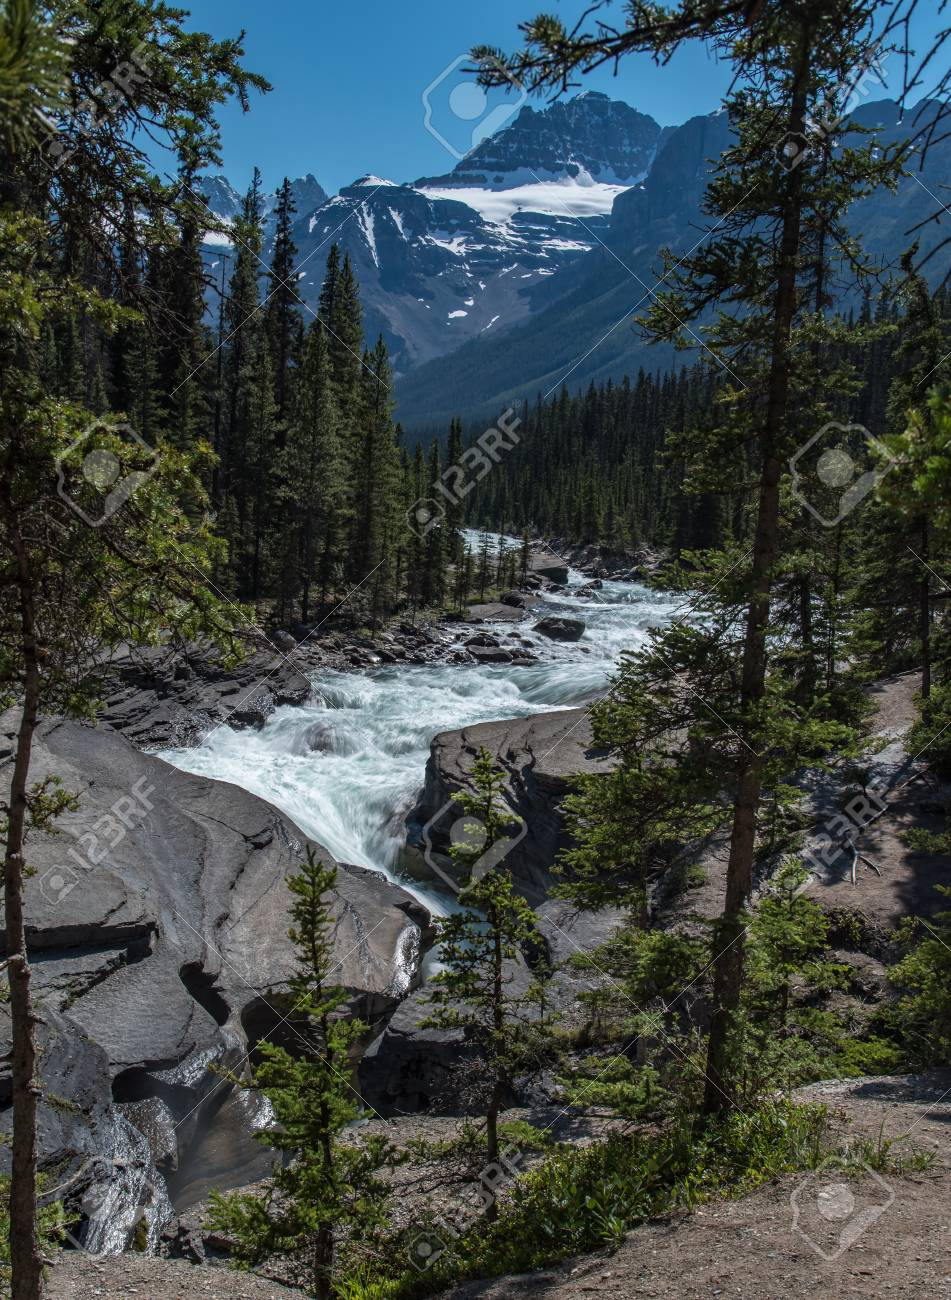 Mistaya canyon in summer beautiful blue sky in sunny day with mountain and river flowing , Alberta, Canada - 115023909